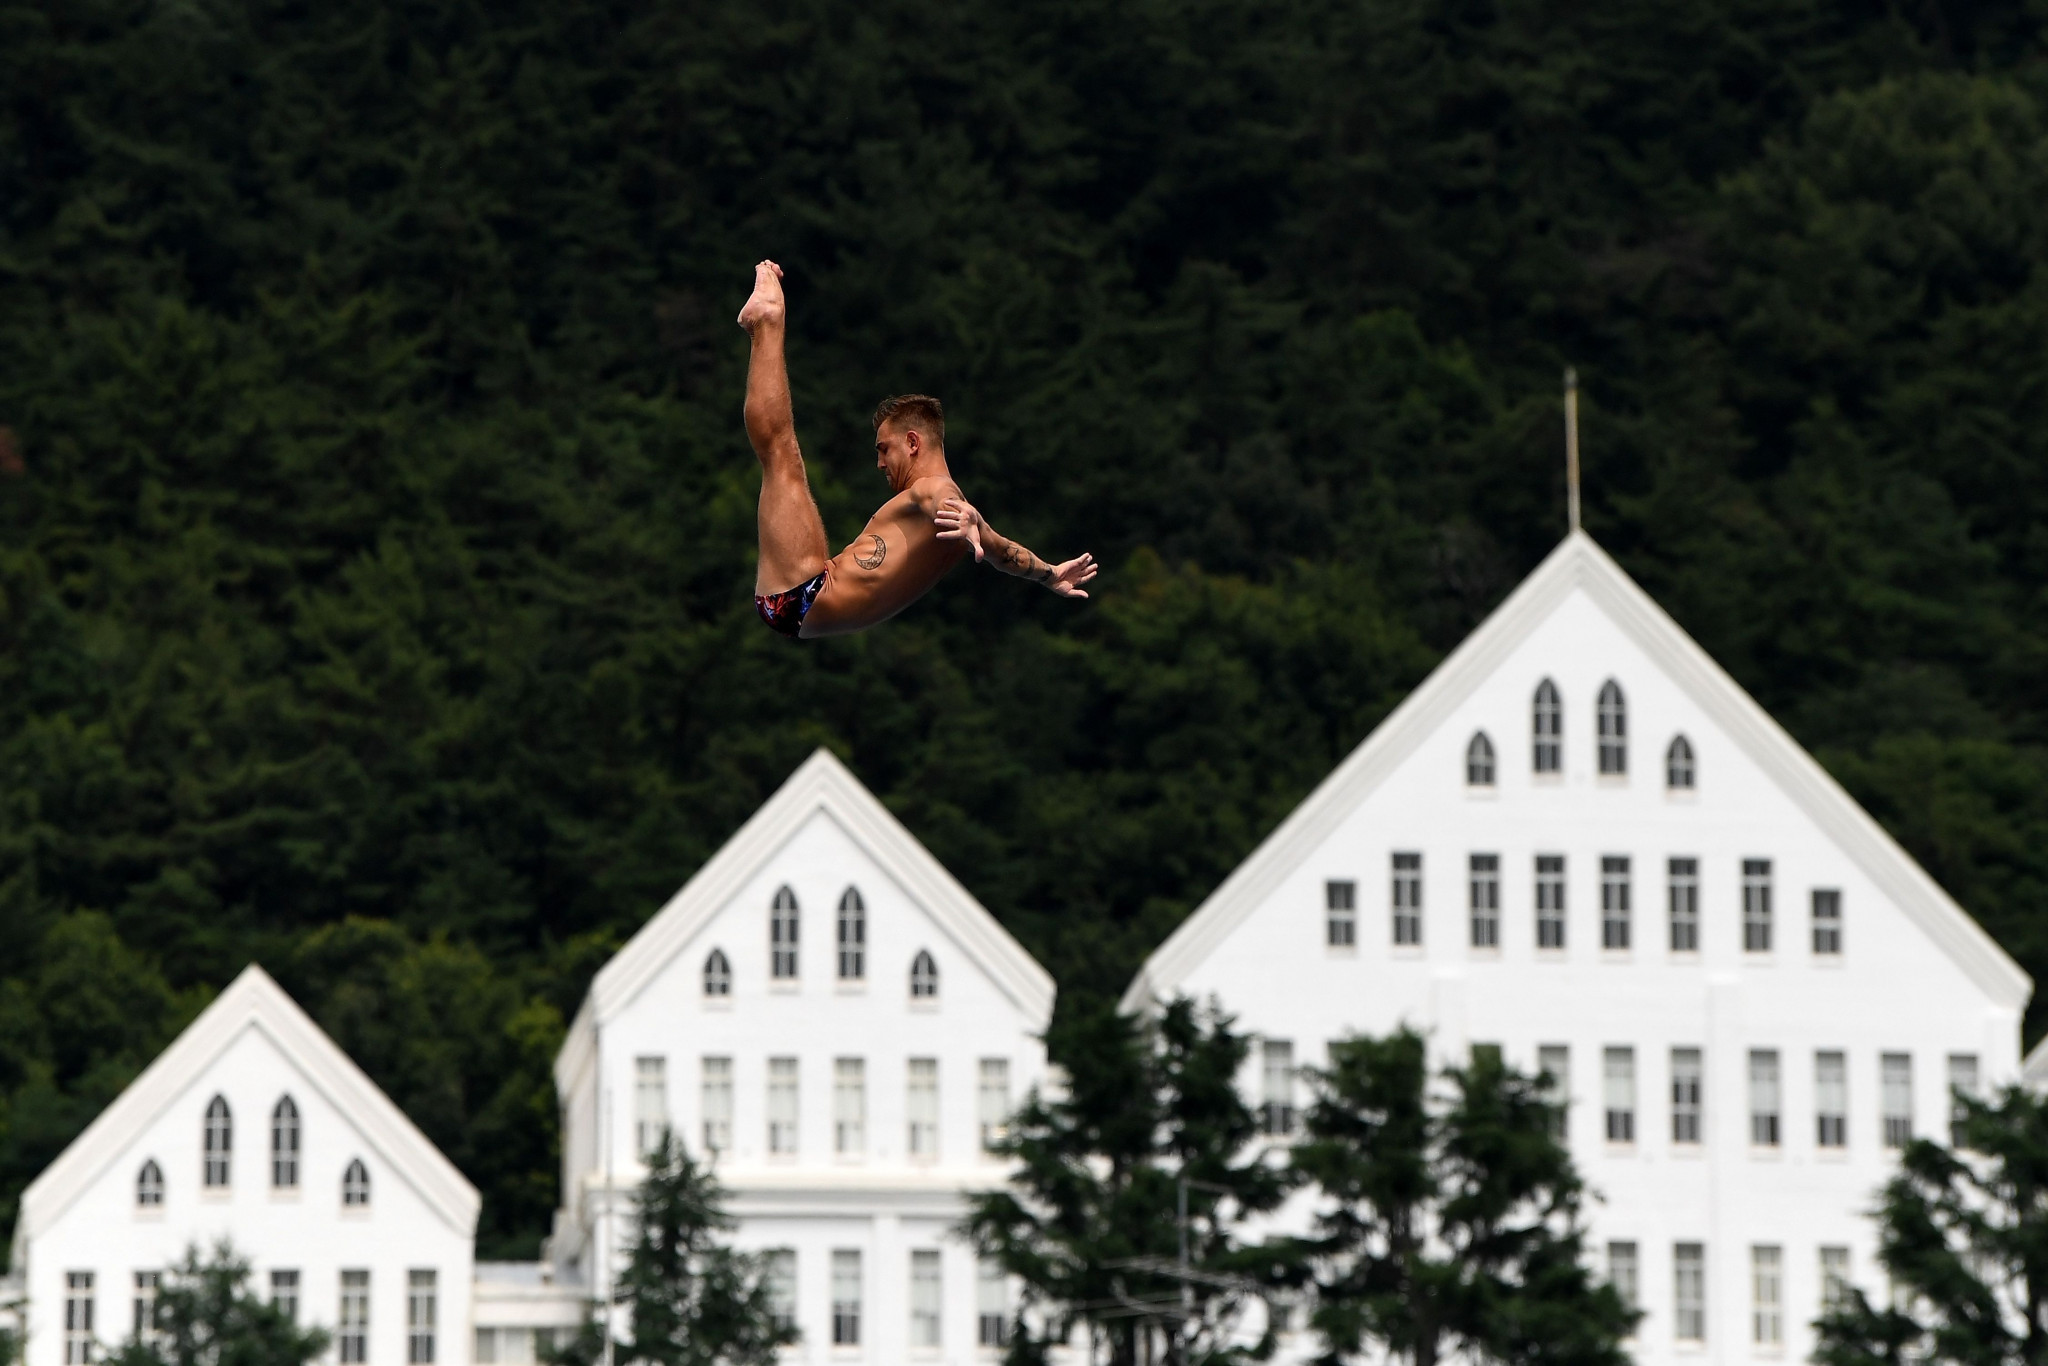 Russia's Nikita Fedotov competes in a round of the men's high diving event at Chosun University in Gwangju ©Getty Images